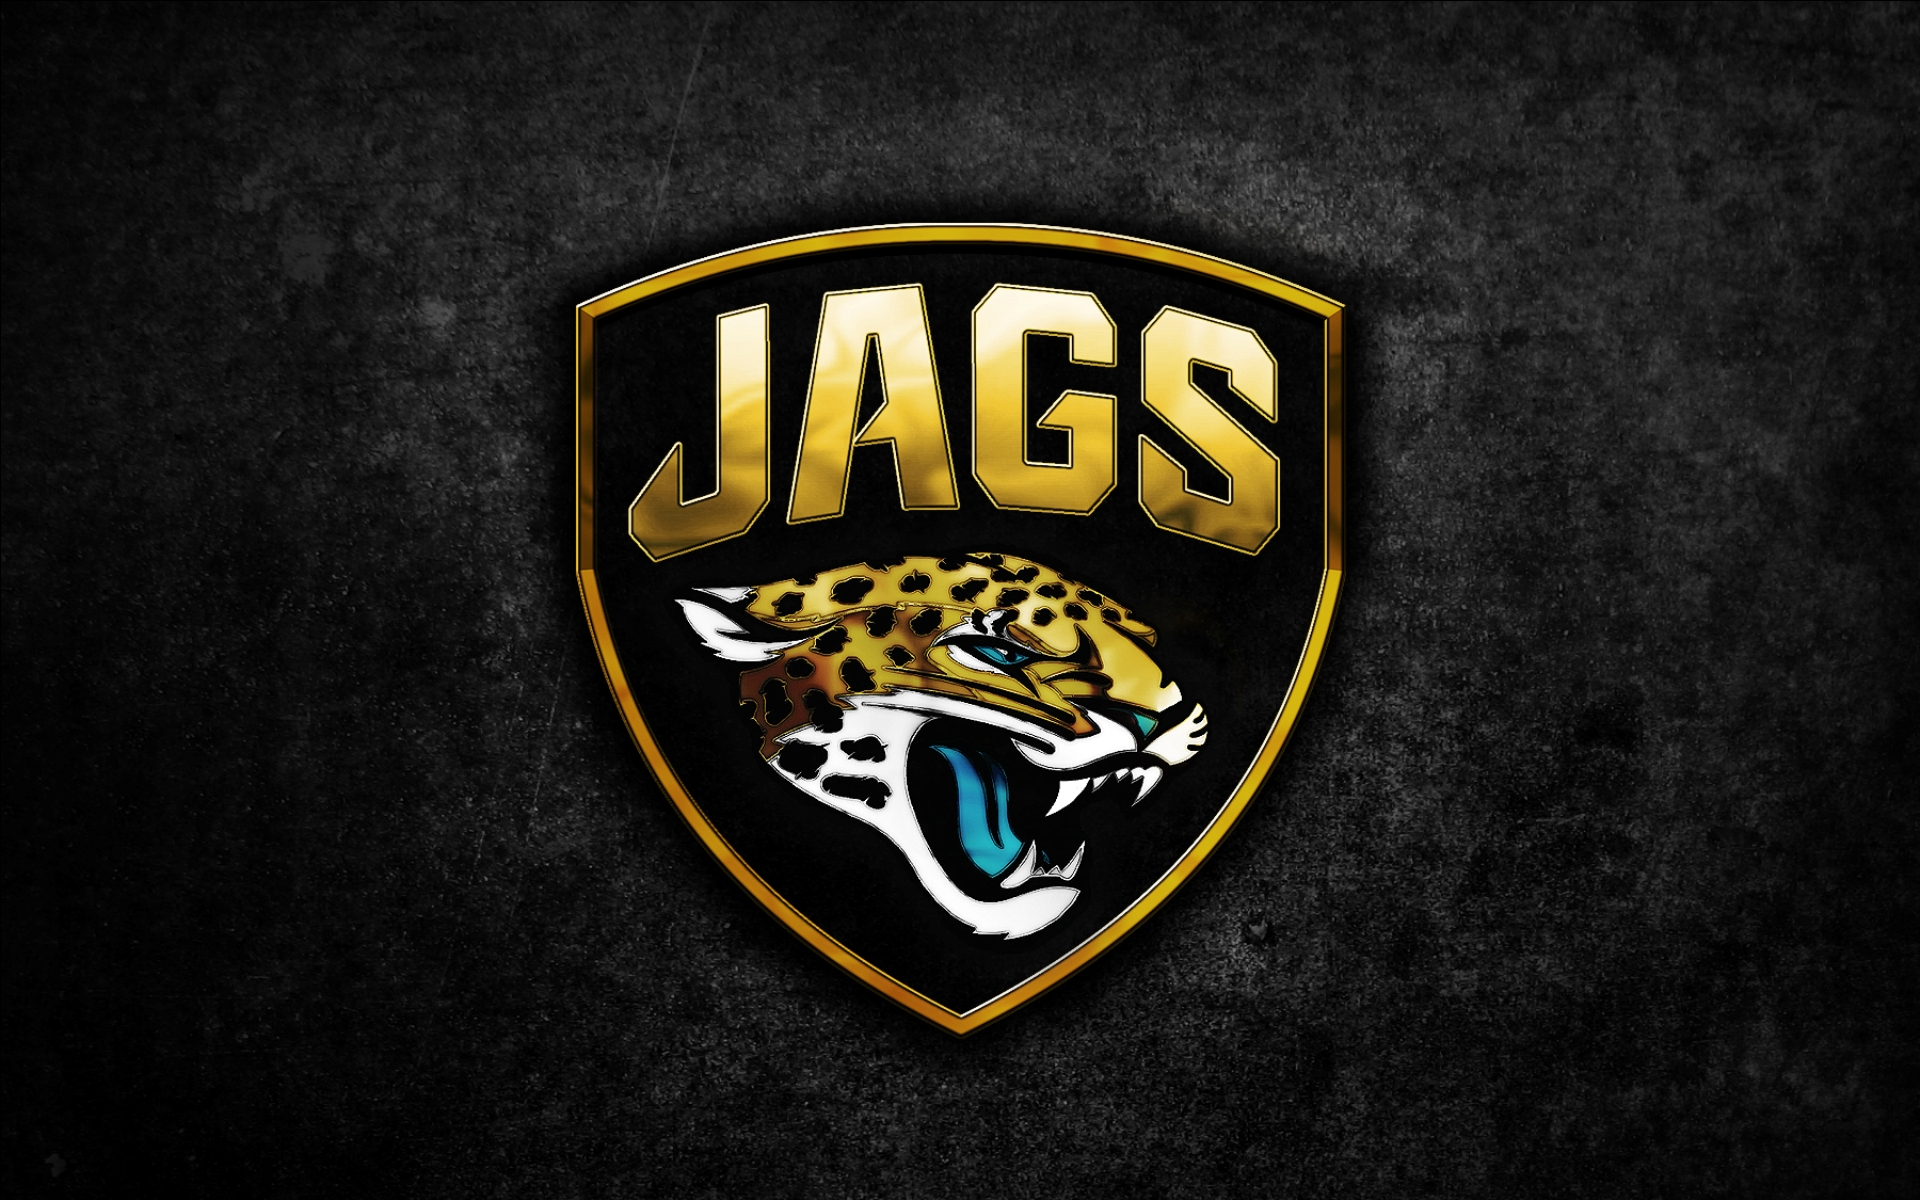 JACKSONVILLE JAGUARS nfl football r wallpaper backgroundJacksonville Jaguars Wallpaper 2013